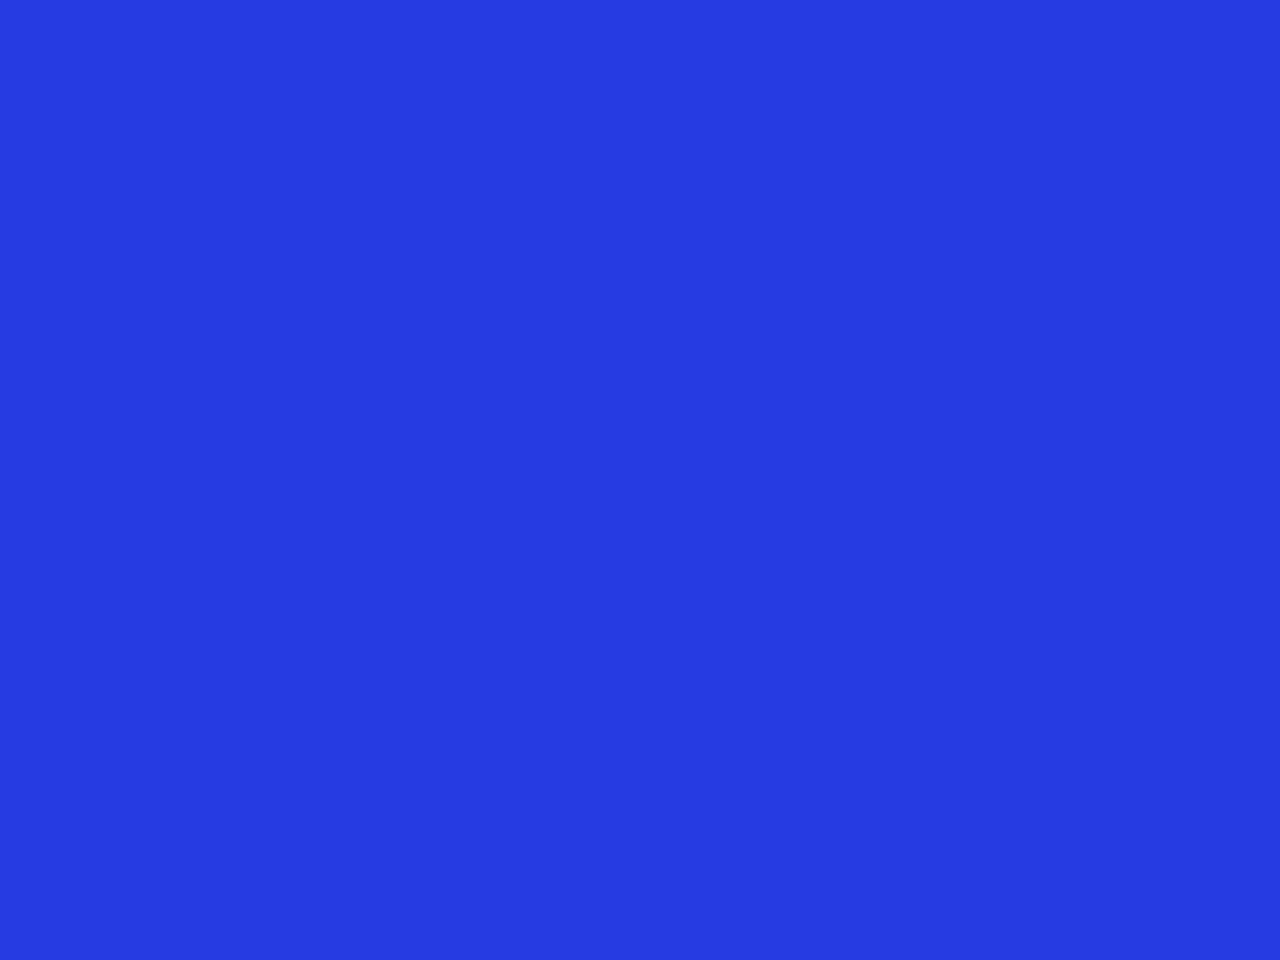 1280x960 Palatinate Blue Solid Color Background